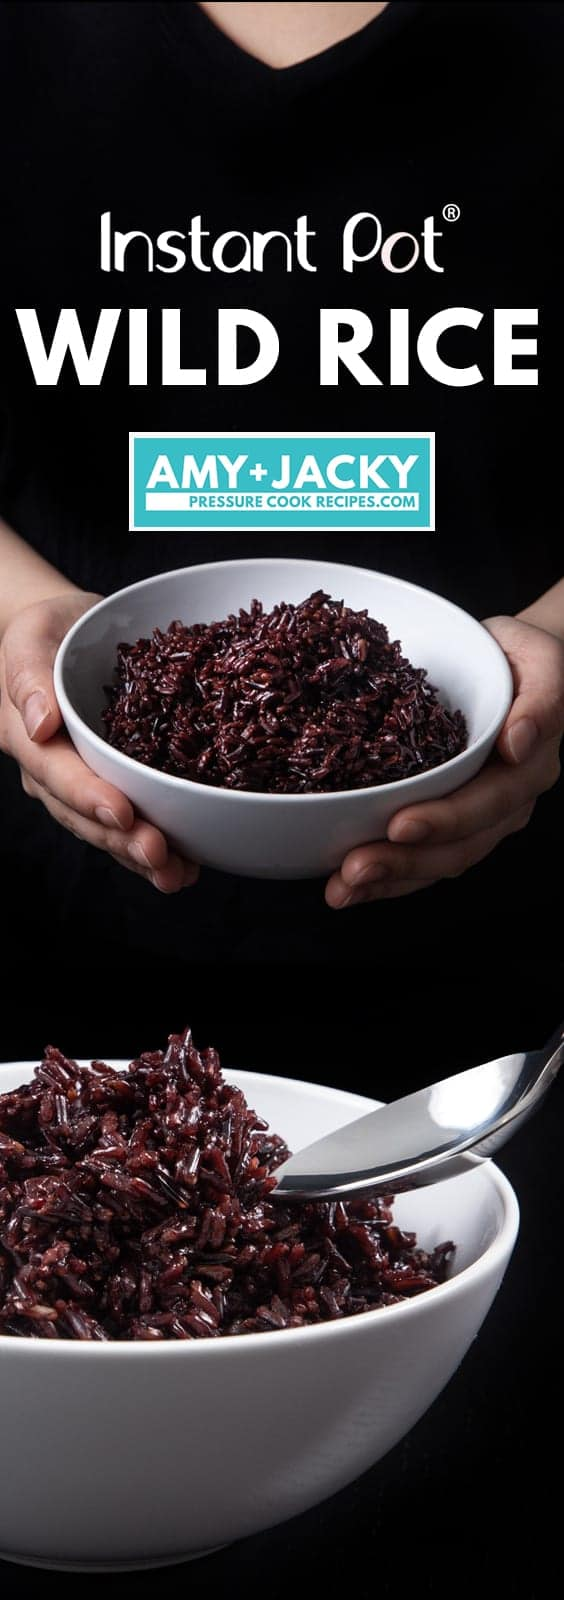 Nutritious Instant Pot Wild Rice Recipe (Pressure Cooker Wild Rice): learn how to make wild rice in half the cooking time. Perfectly tender wild rice with a chew, packed with nutty flavors, and sweet aroma.High Protein, high dietary fiber, low fat. #instantpot #instapot #pressurecooker #instantpotrecipes #powerpressurecooker #rice #vegan #glutenfree #paleo #recipes